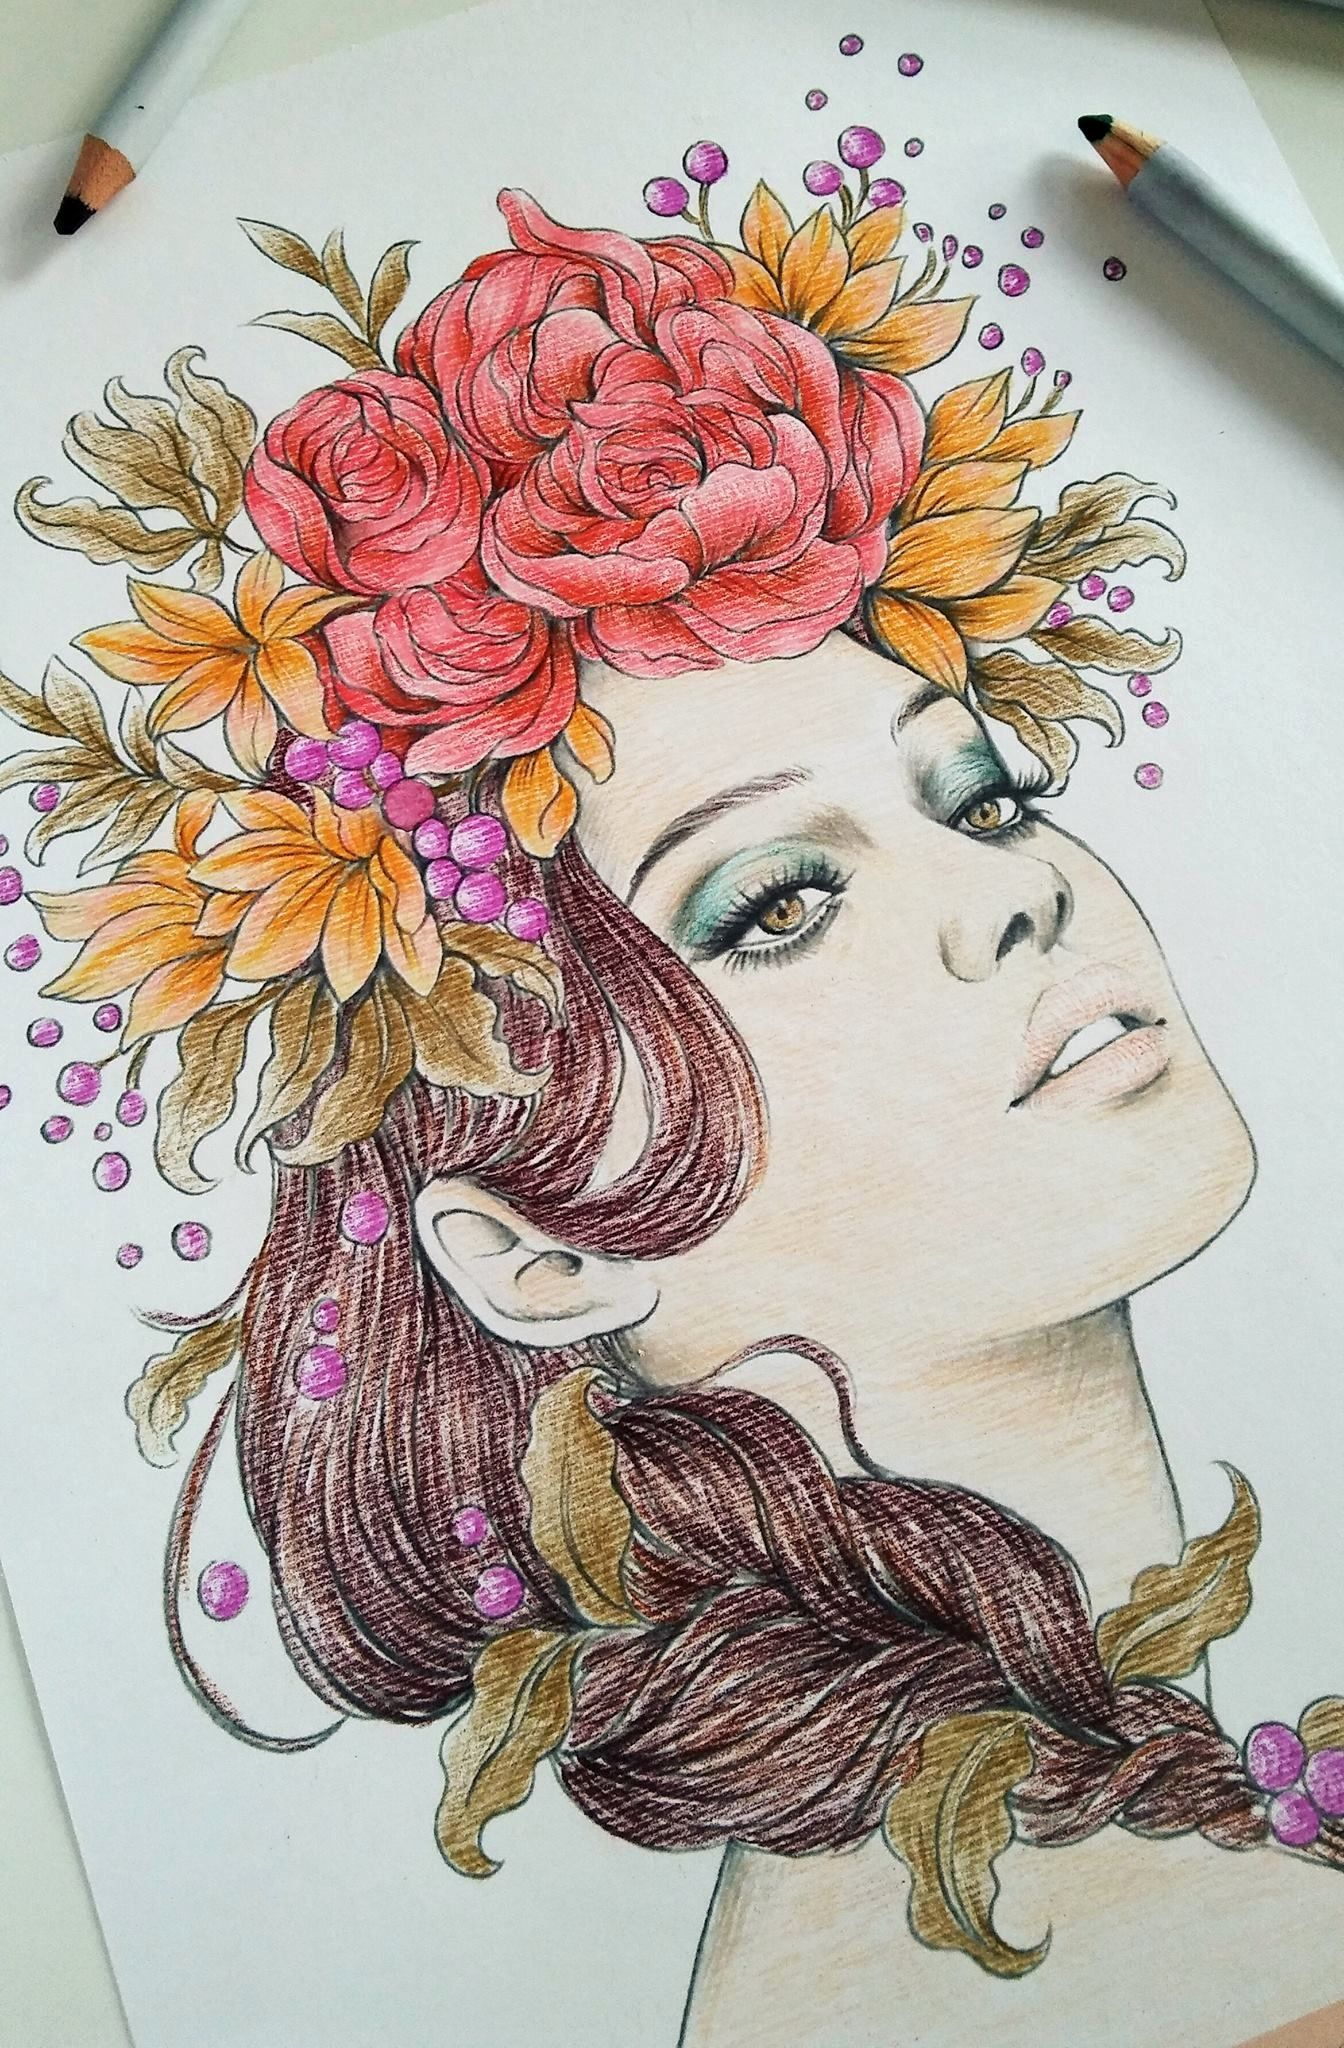 Watercolor Pencil Coloring Books Best Of Prima Marketing Watercolor Pencils And Beauti Colored Pencil Coloring Book Art Painting Supplies Flower Coloring Pages